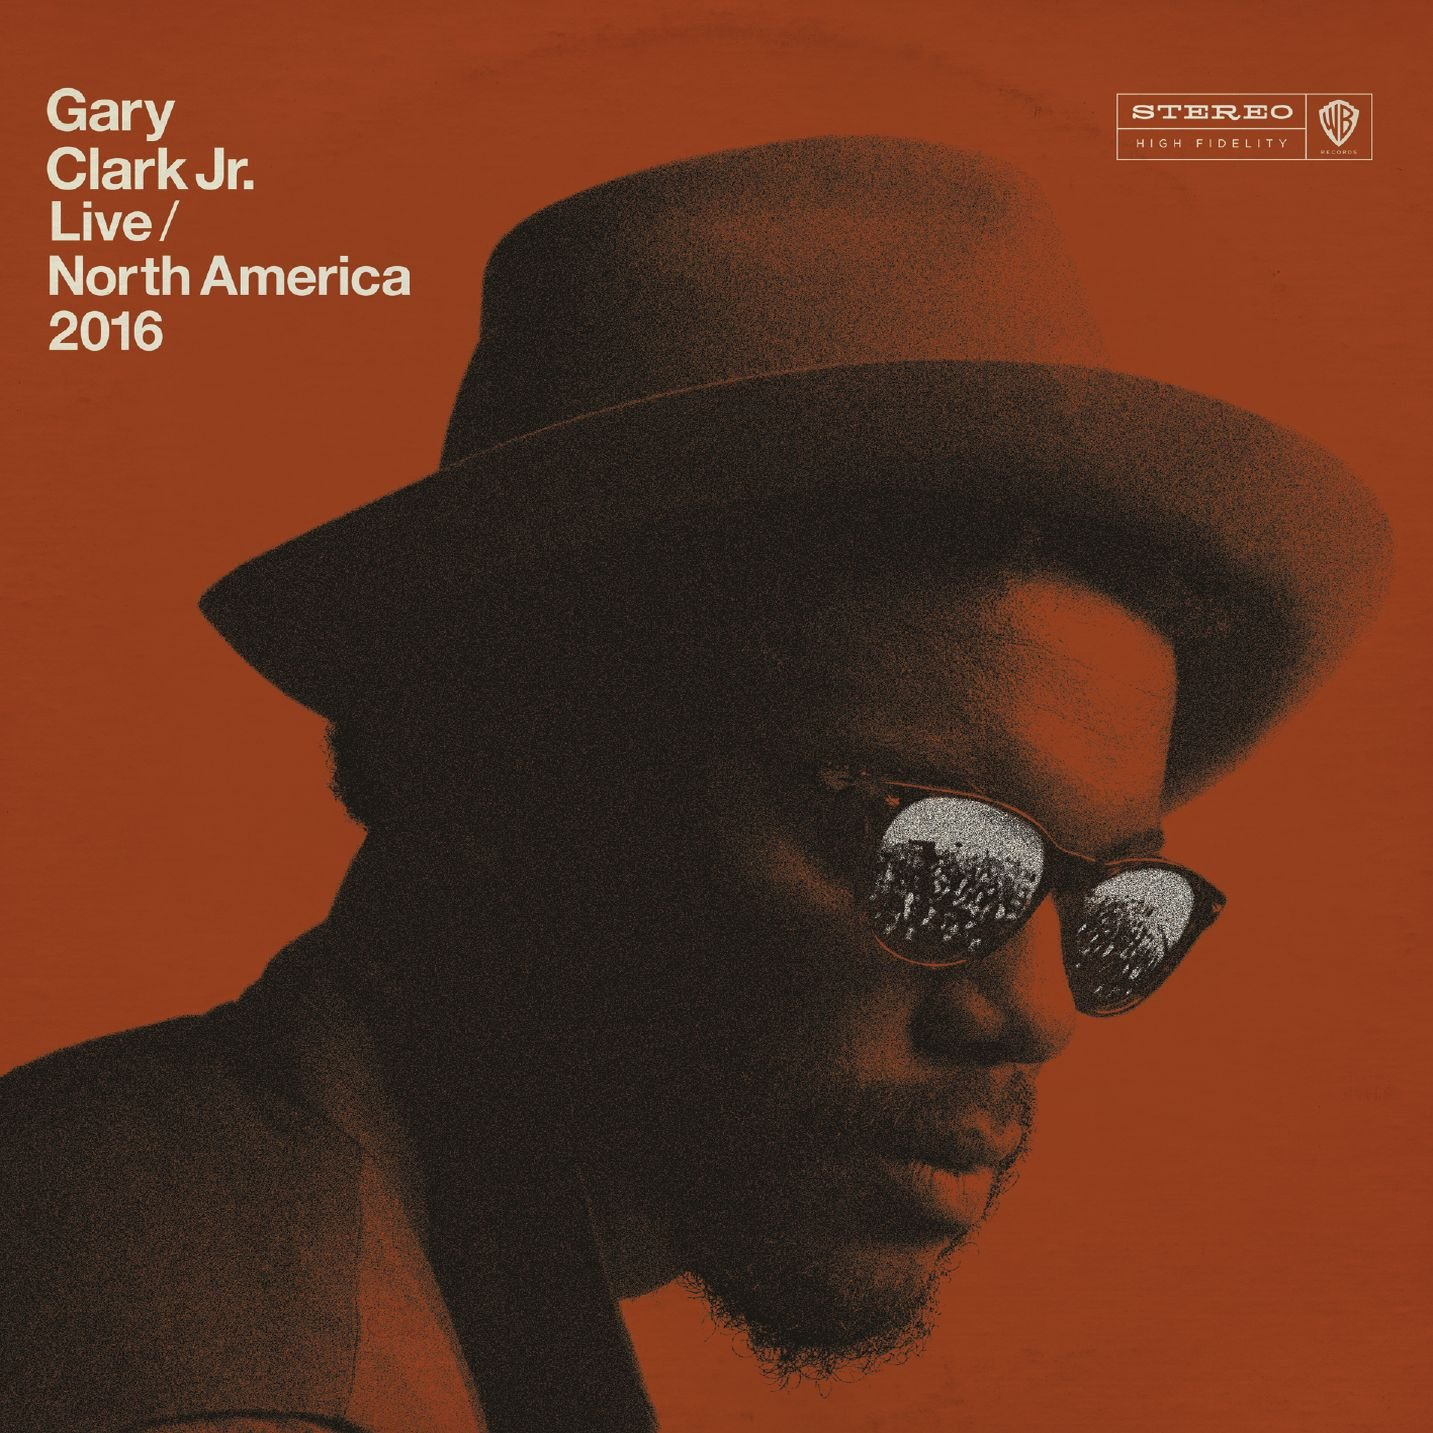 CD : Gary Clark Jr. - Live North America 2016 (CD)